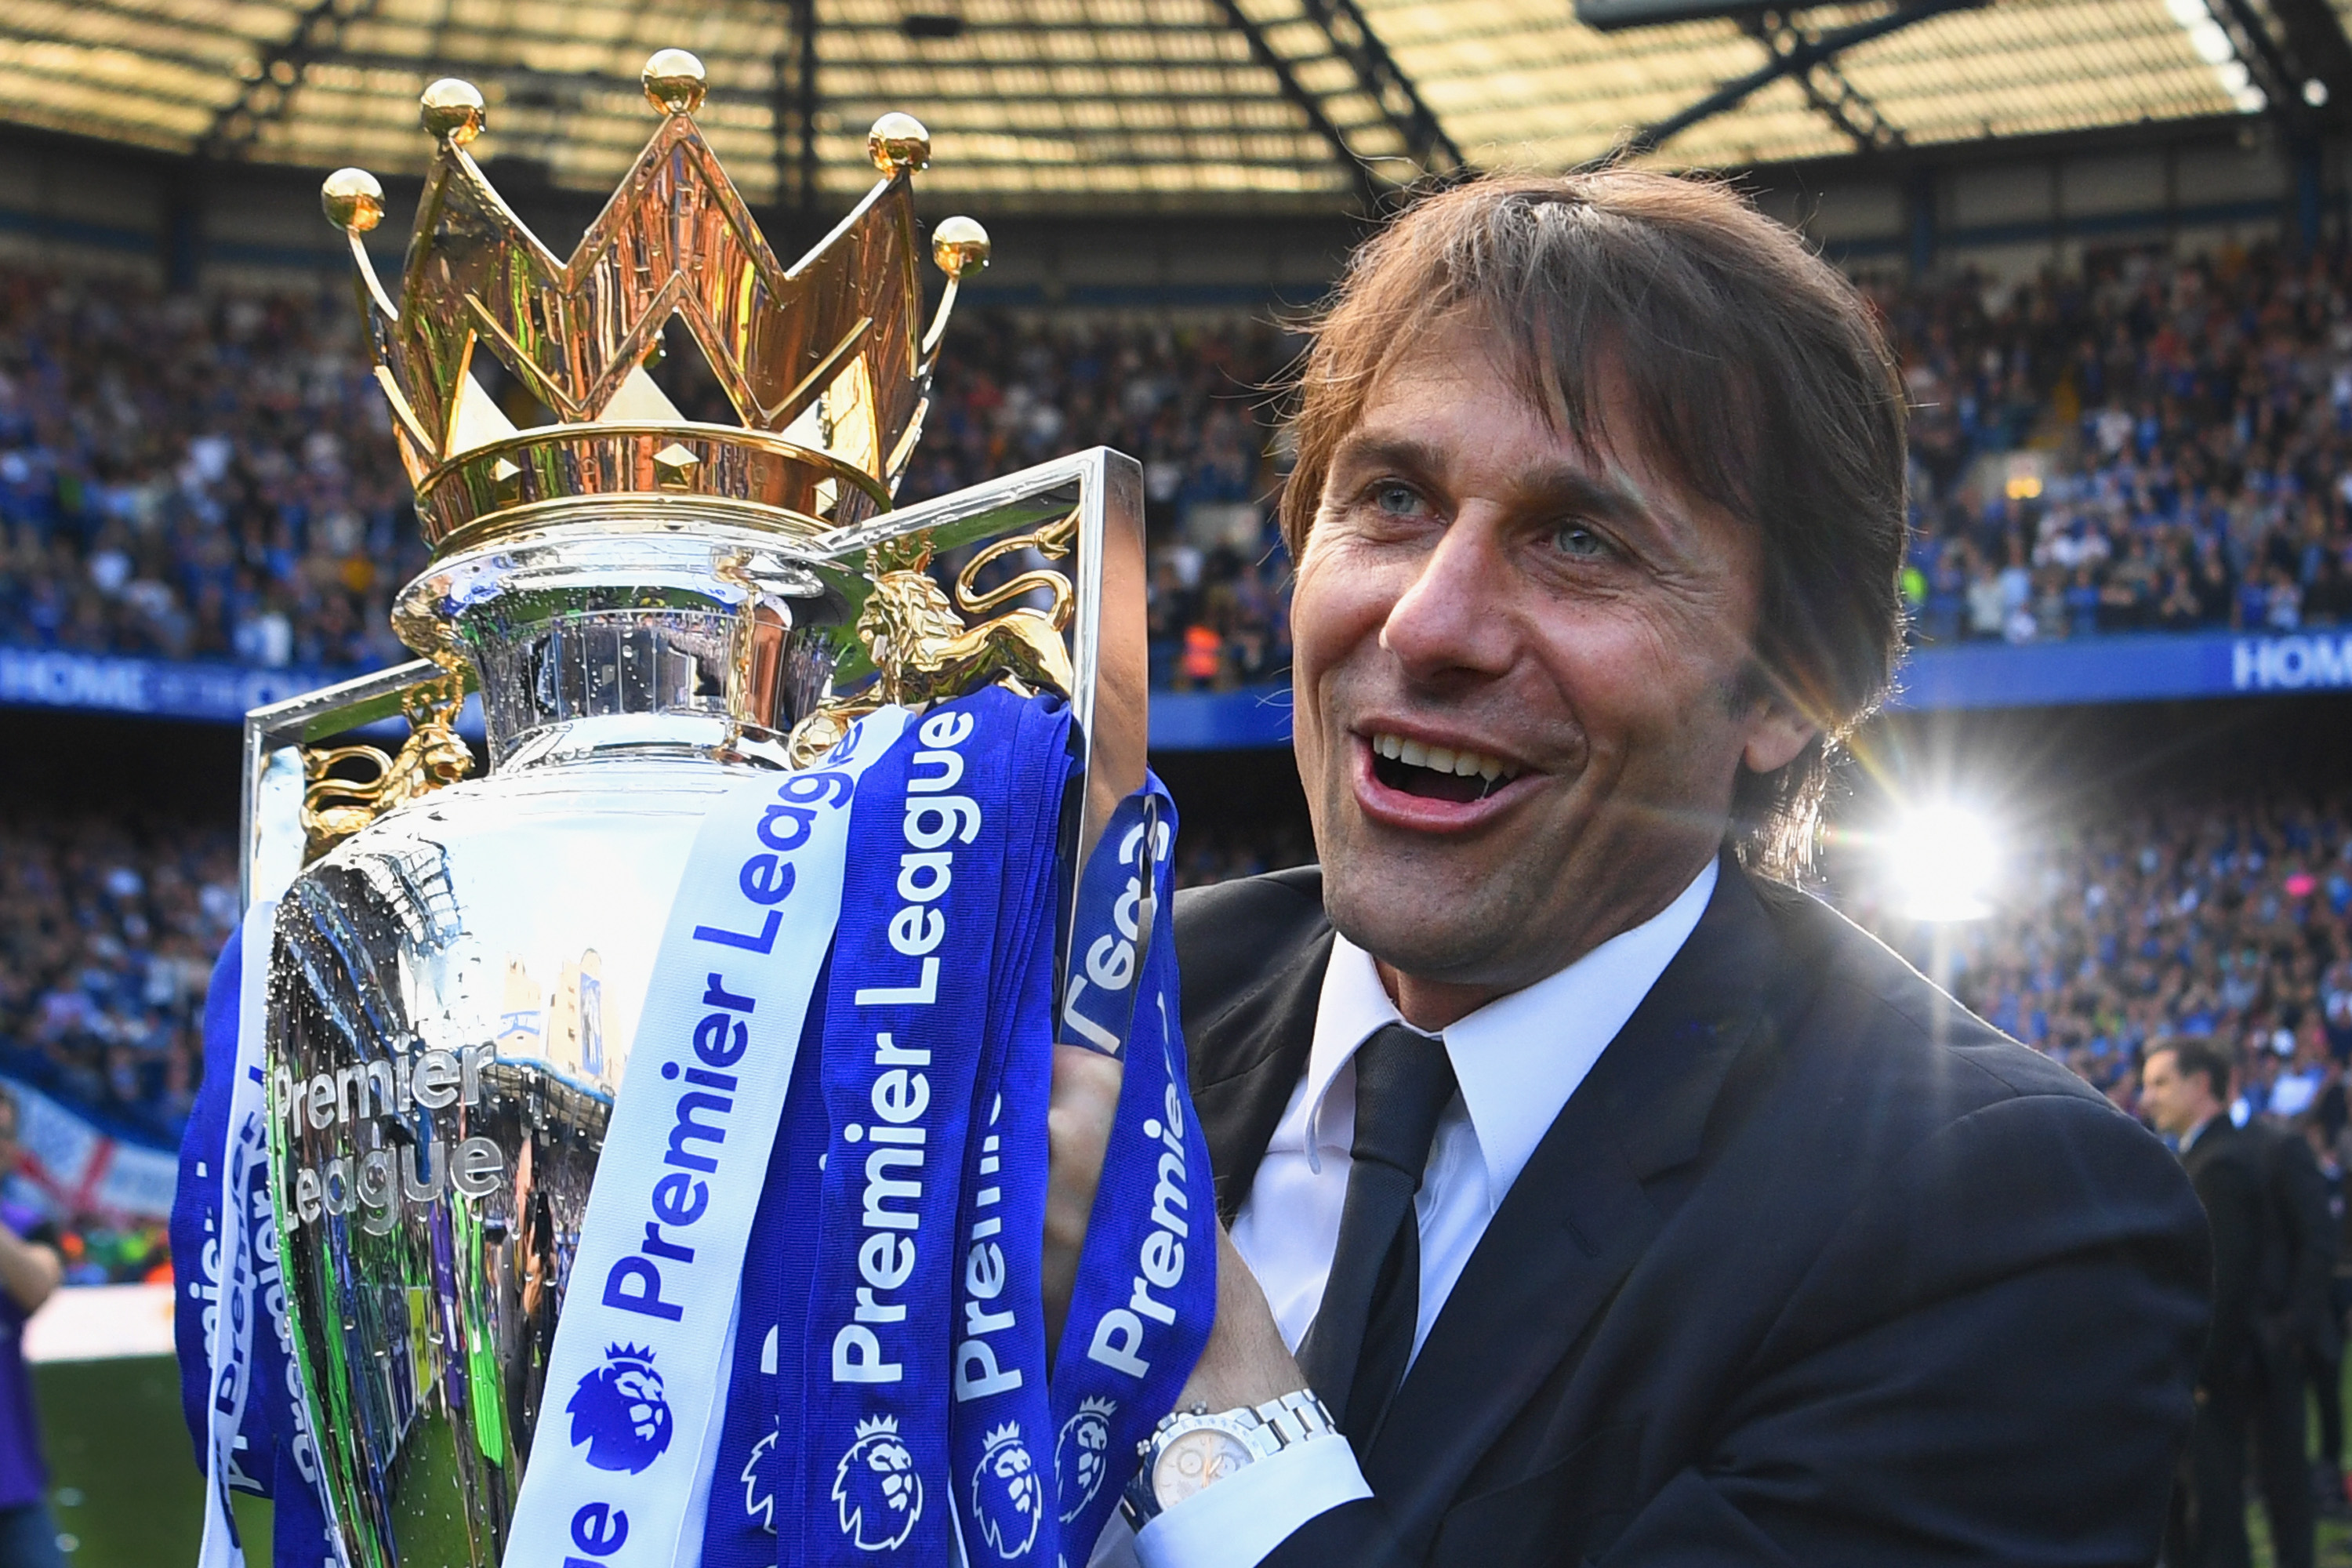 Conte oversaw a Premier League triumph in his first season in charge at Chelsea. (Photo courtesy - Michael Regan/Getty Images)